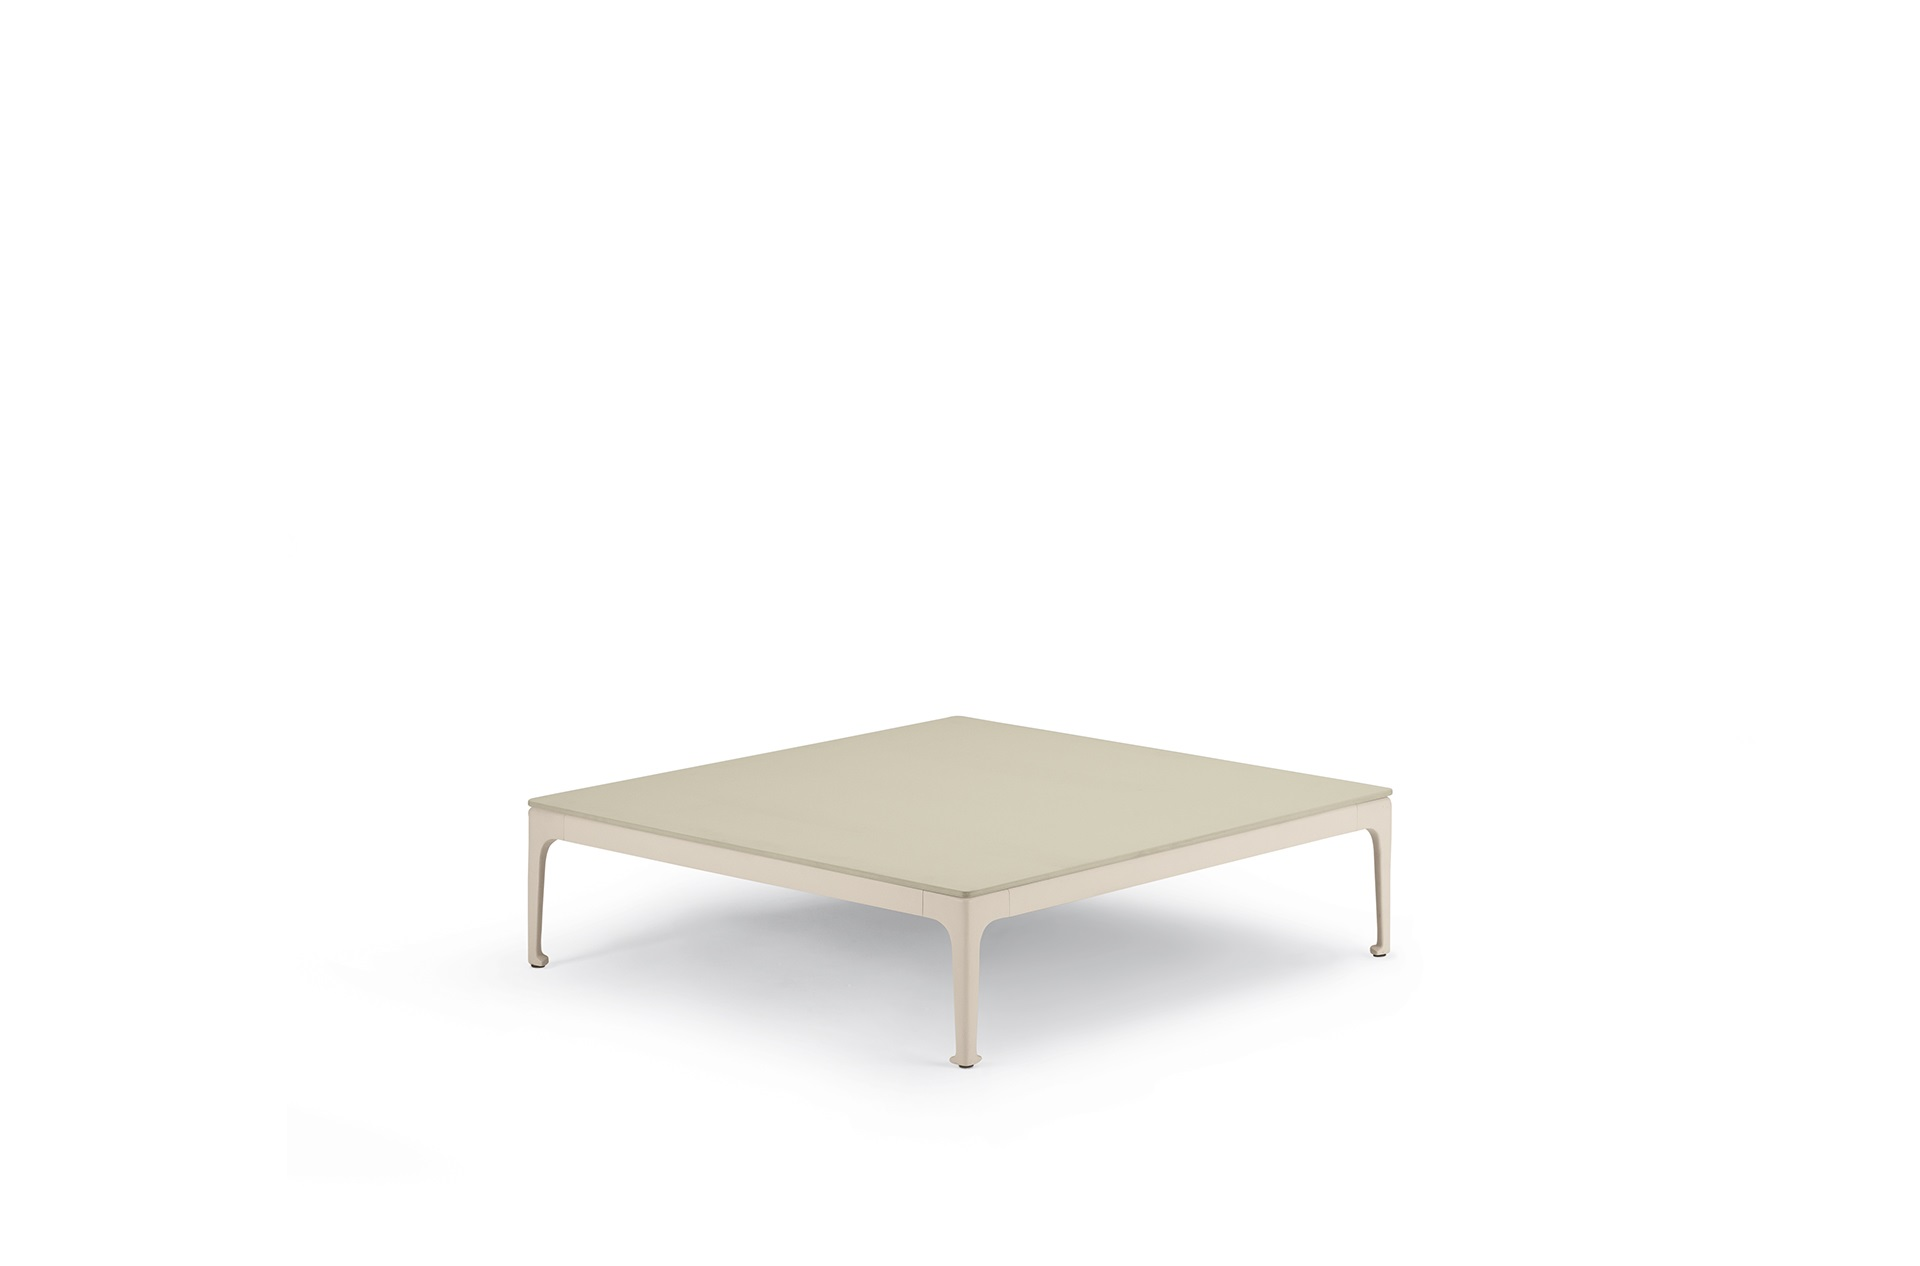 Dedon Rayn Coffeetable 88x88cm Calico